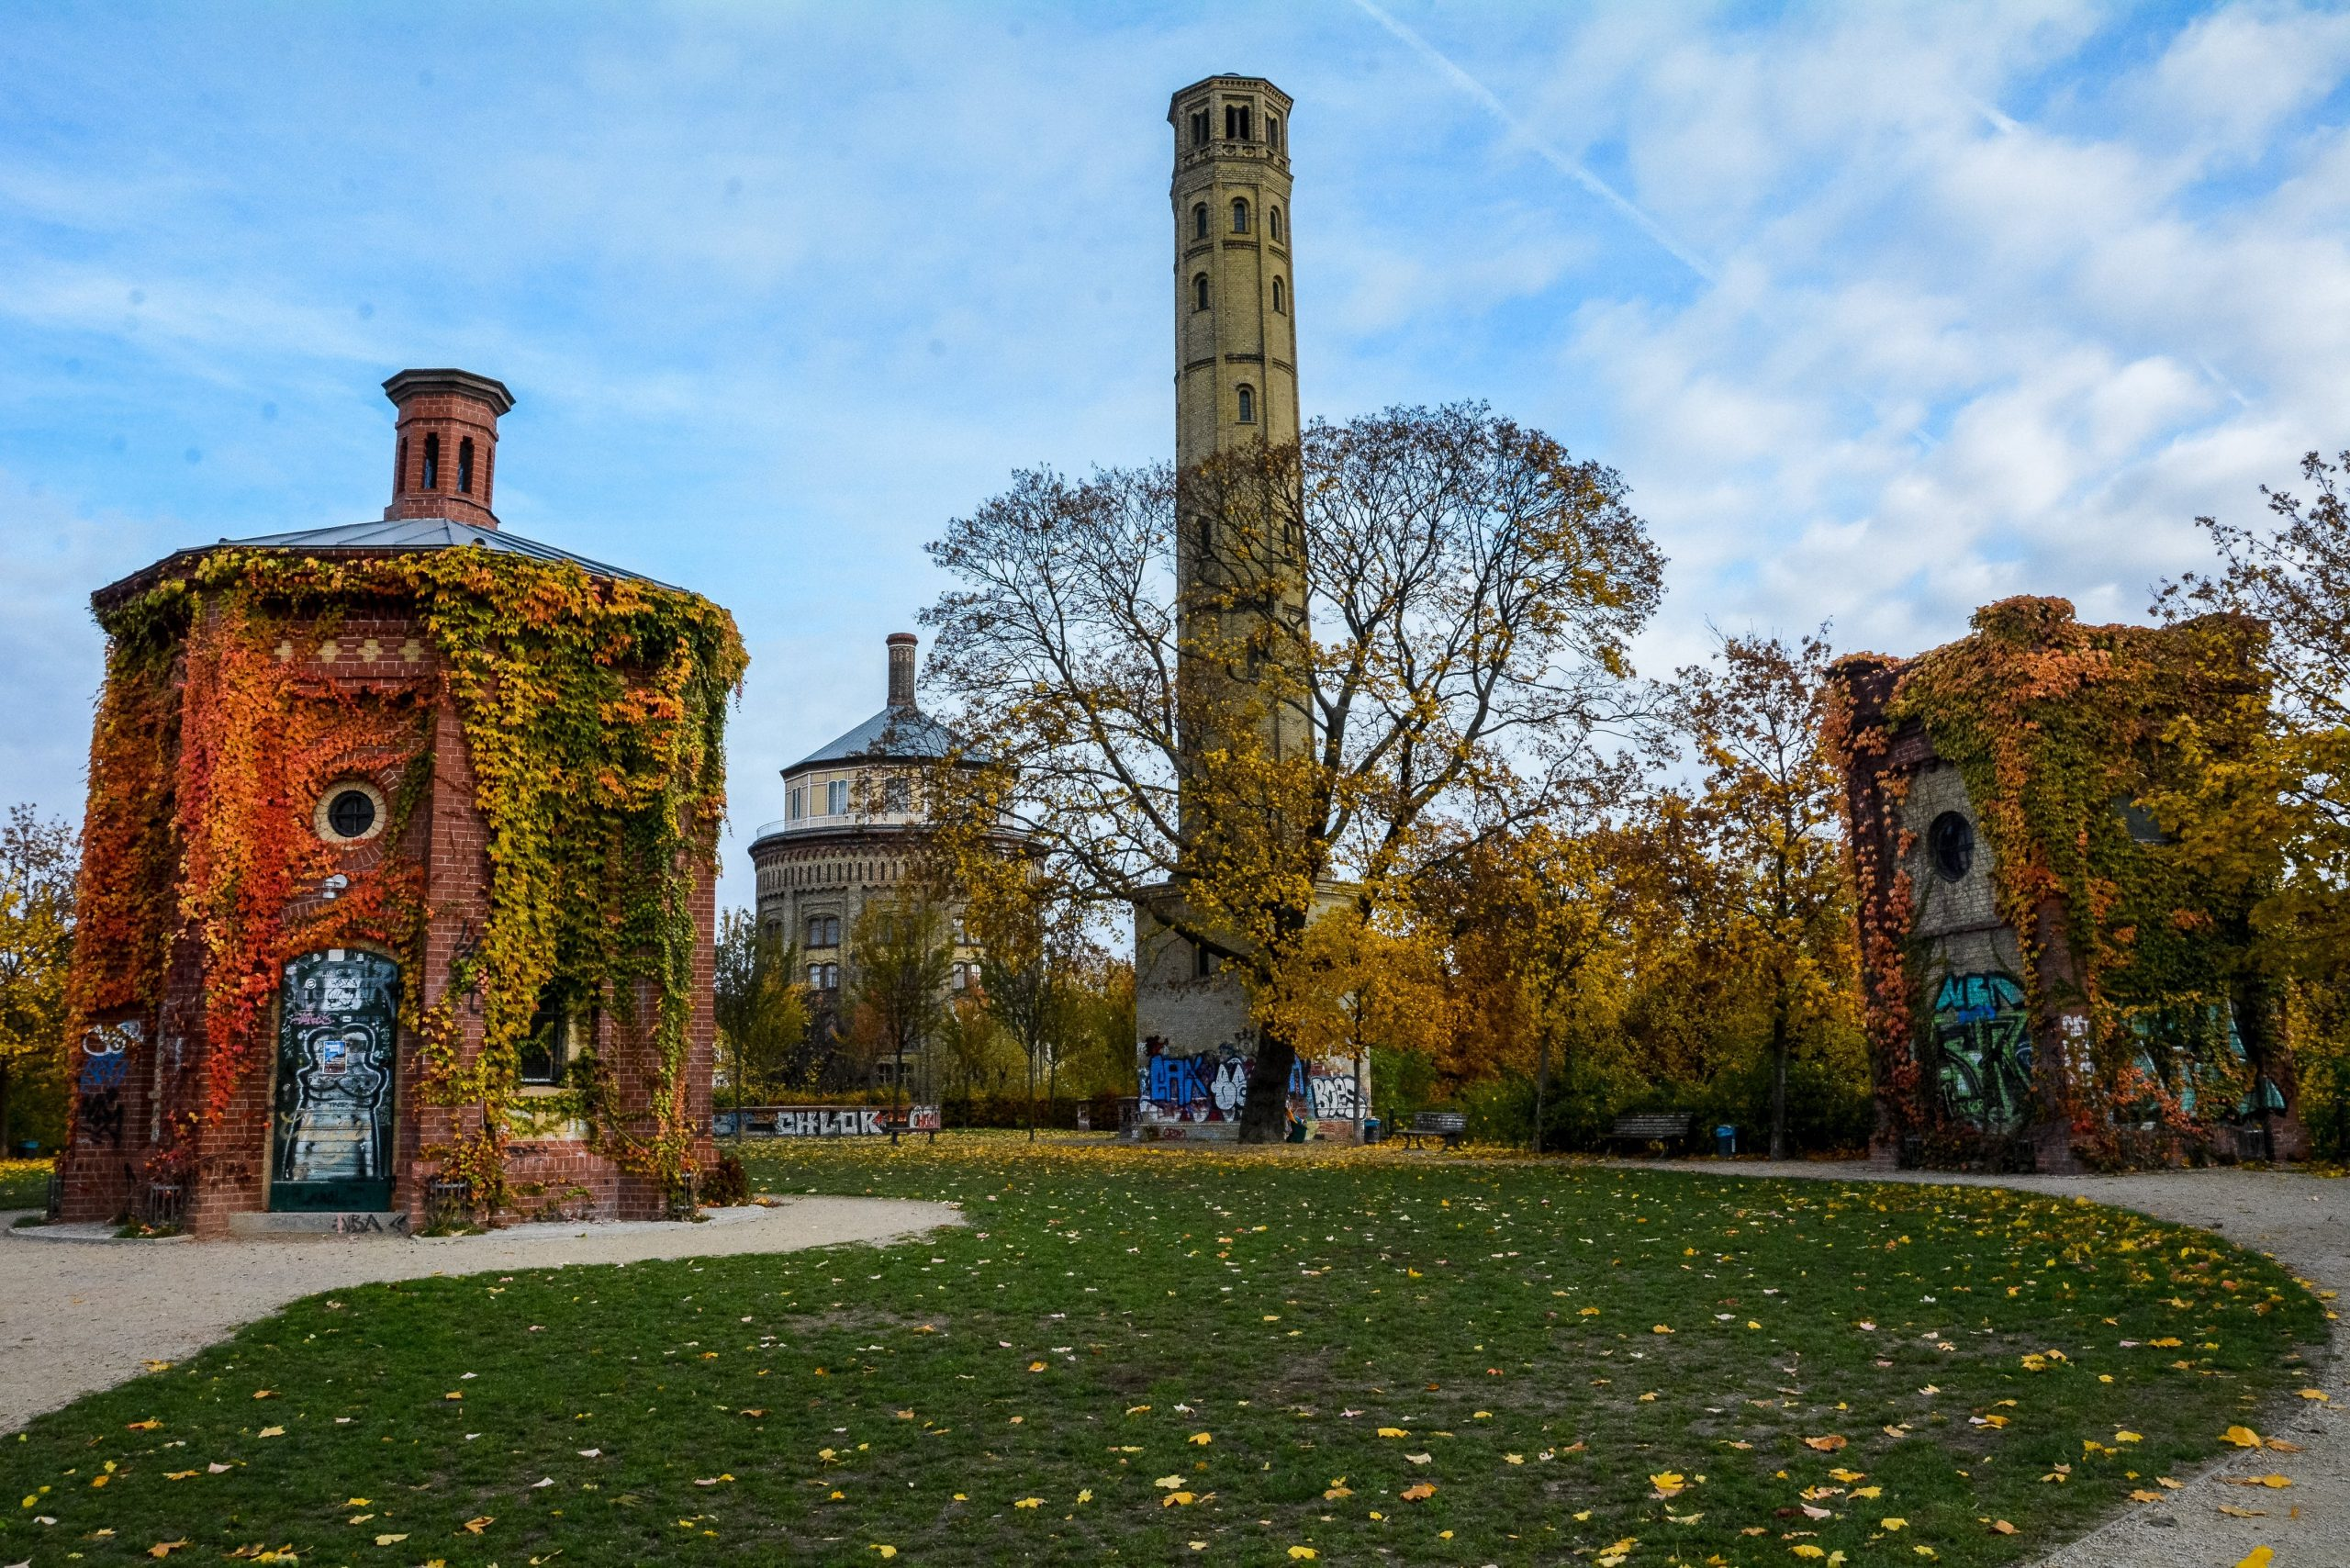 berlin prenzlauer berg wasserturm water tower water reservoir entrance park